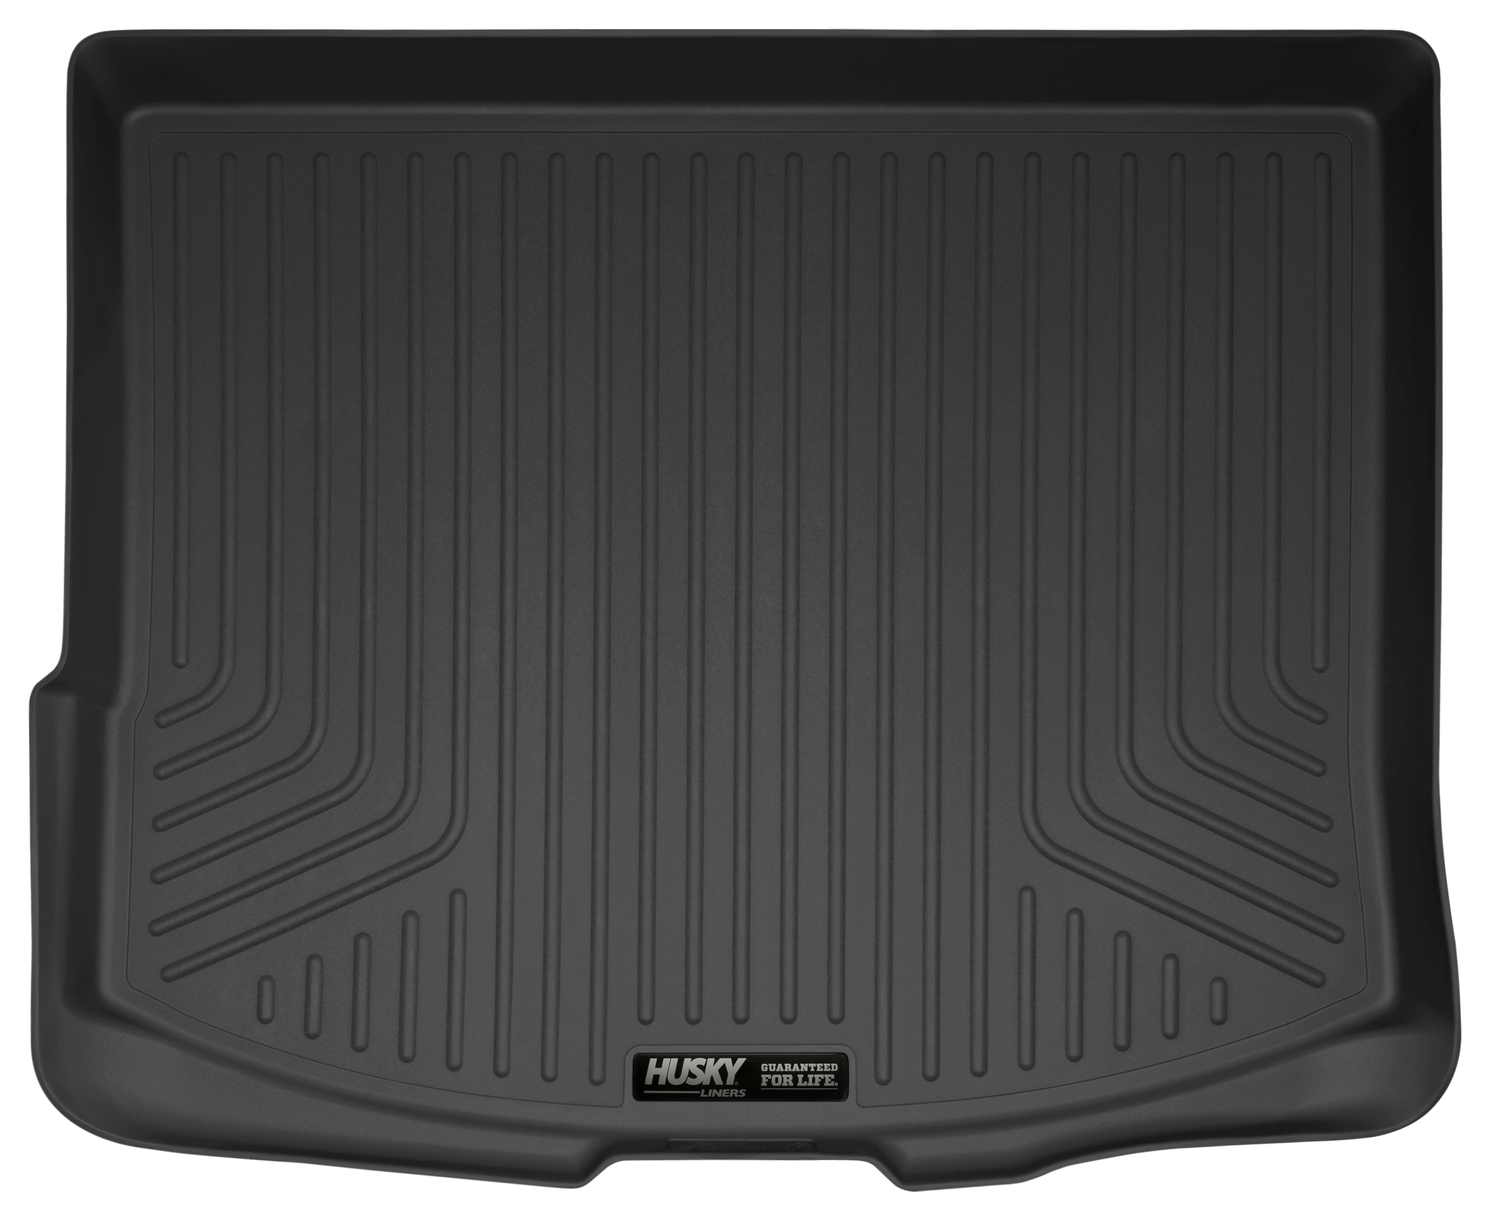 Weathertech mats ebay - Please Confirm Fitment With Ebay Compatibility Chart And Notes Above If You Are Unsure About Fitment Please Call 800 305 1853 For Help Second Row Liner Is